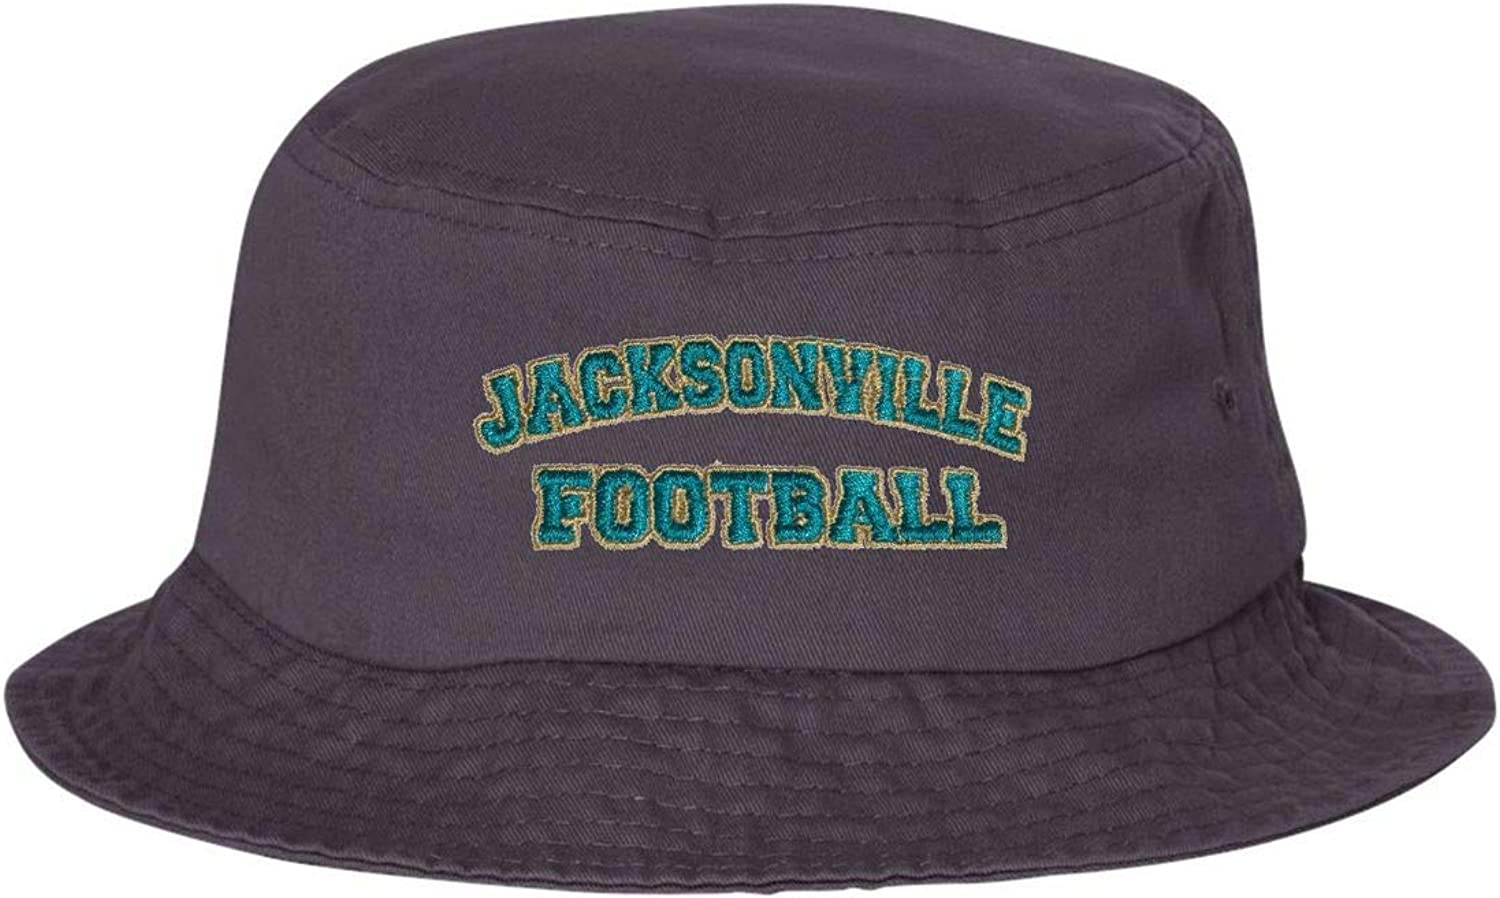 Go All Out Adult Jacksonville Football Embroidered Bucket Cap Dad Hat